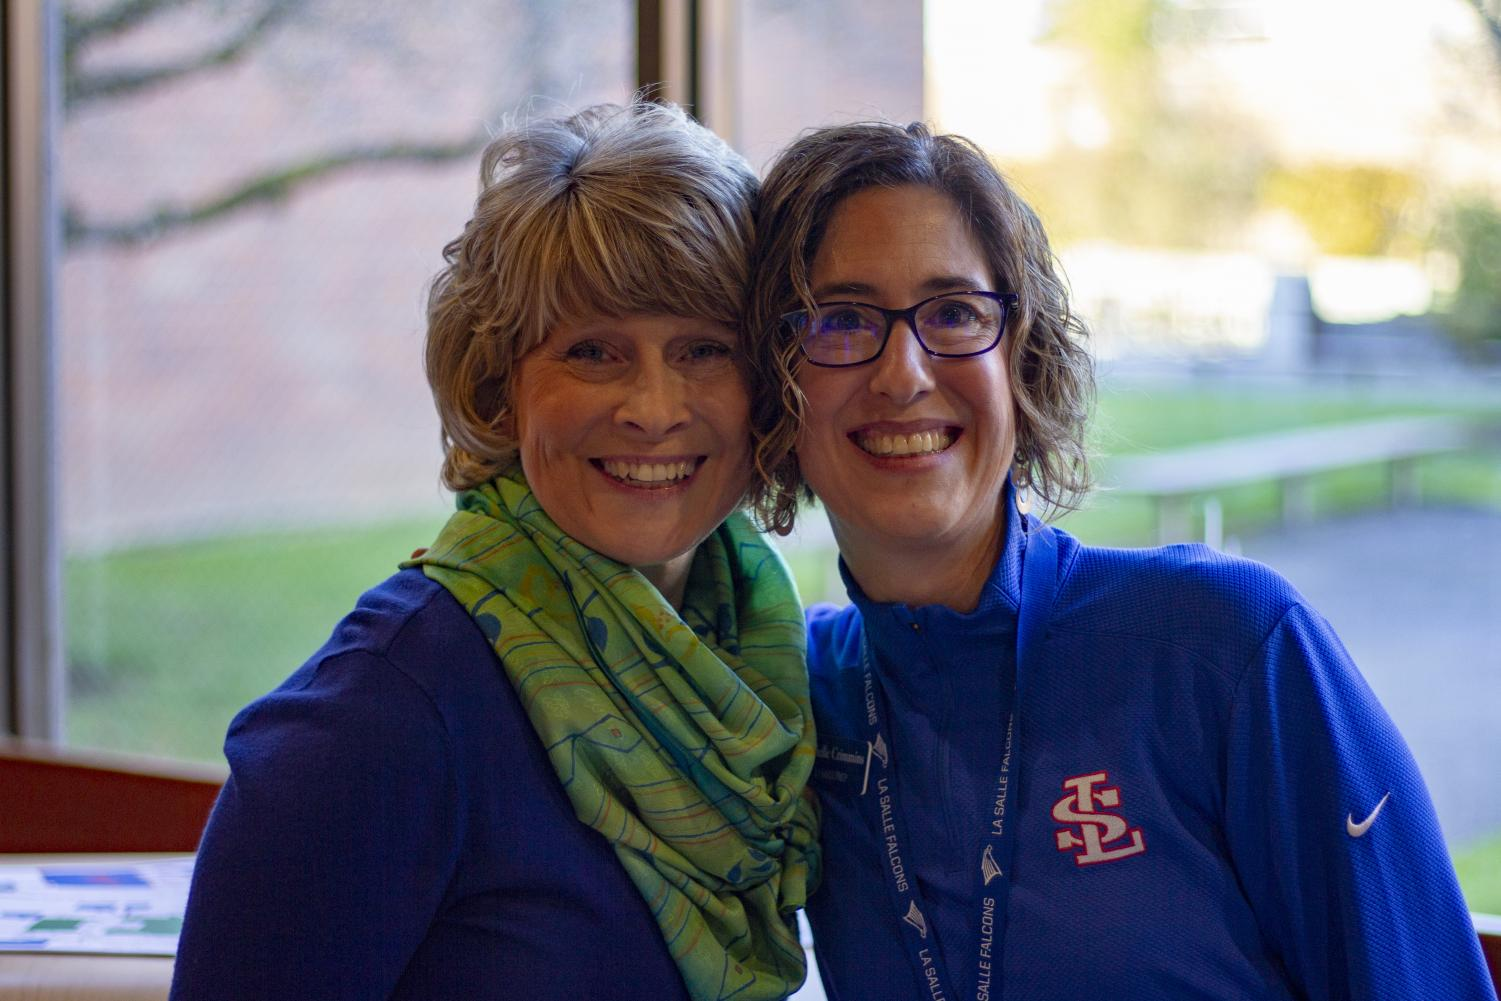 Director+of+Giving+and+Donor+Relations+Ms.+Julie+Dowhaniuk+and+Director+of+Alumni+Giving+Ms.+Michelle+Crimmins+pose+together+in+the+main+hallway.